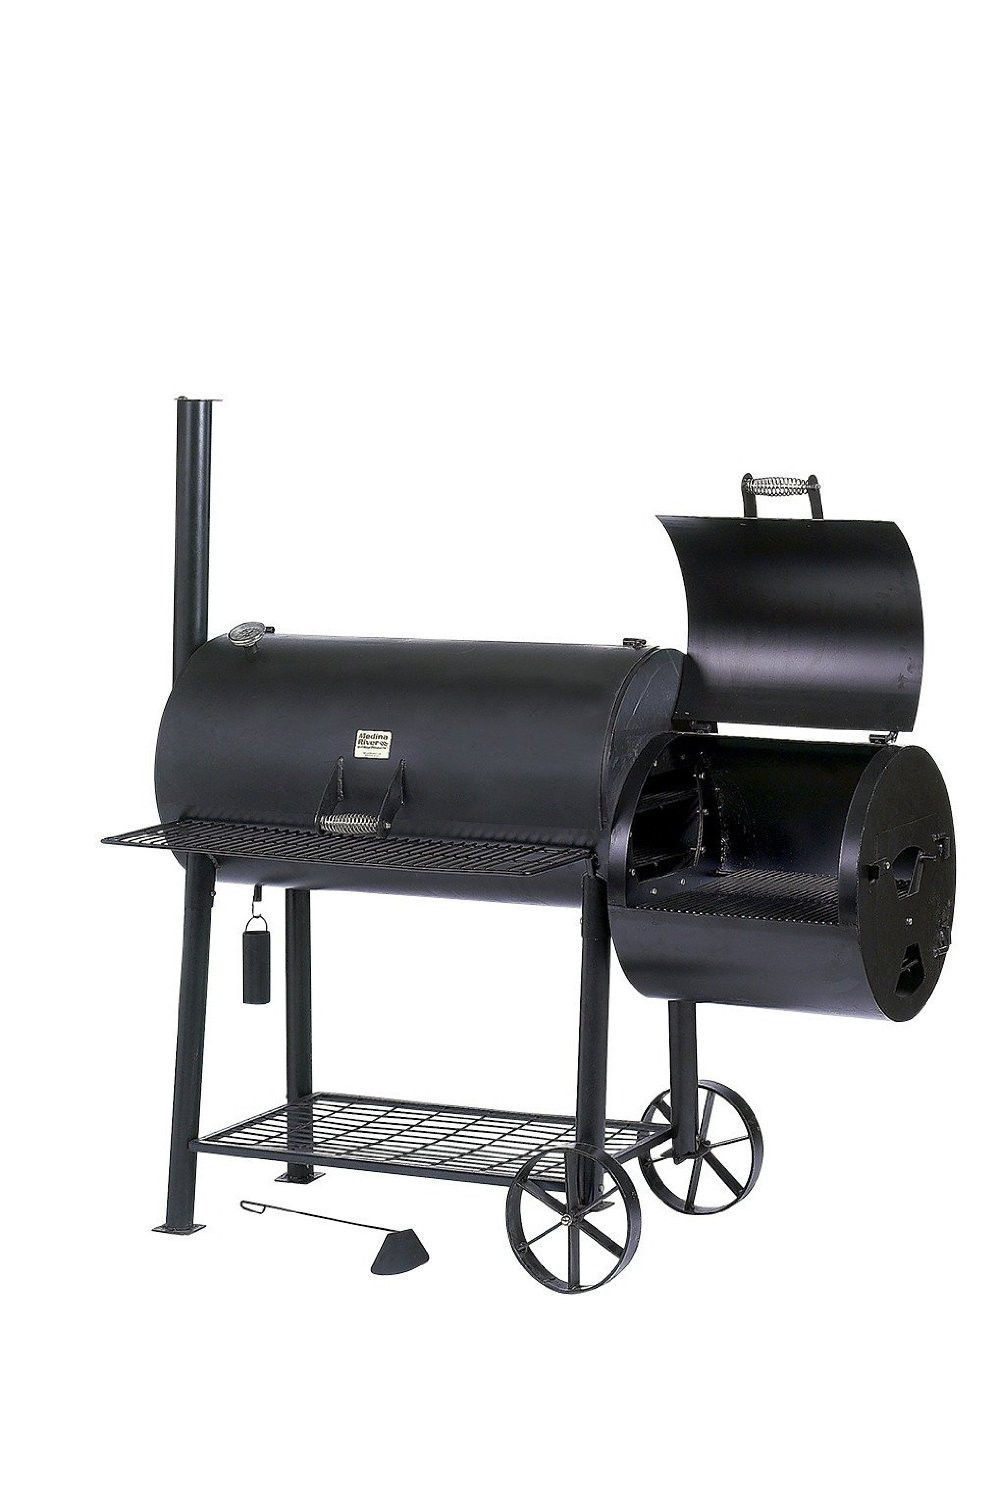 Black Jumbo Charcoal Smoker Grill Combo w Side Box Work Area Patio BBQ Cooking